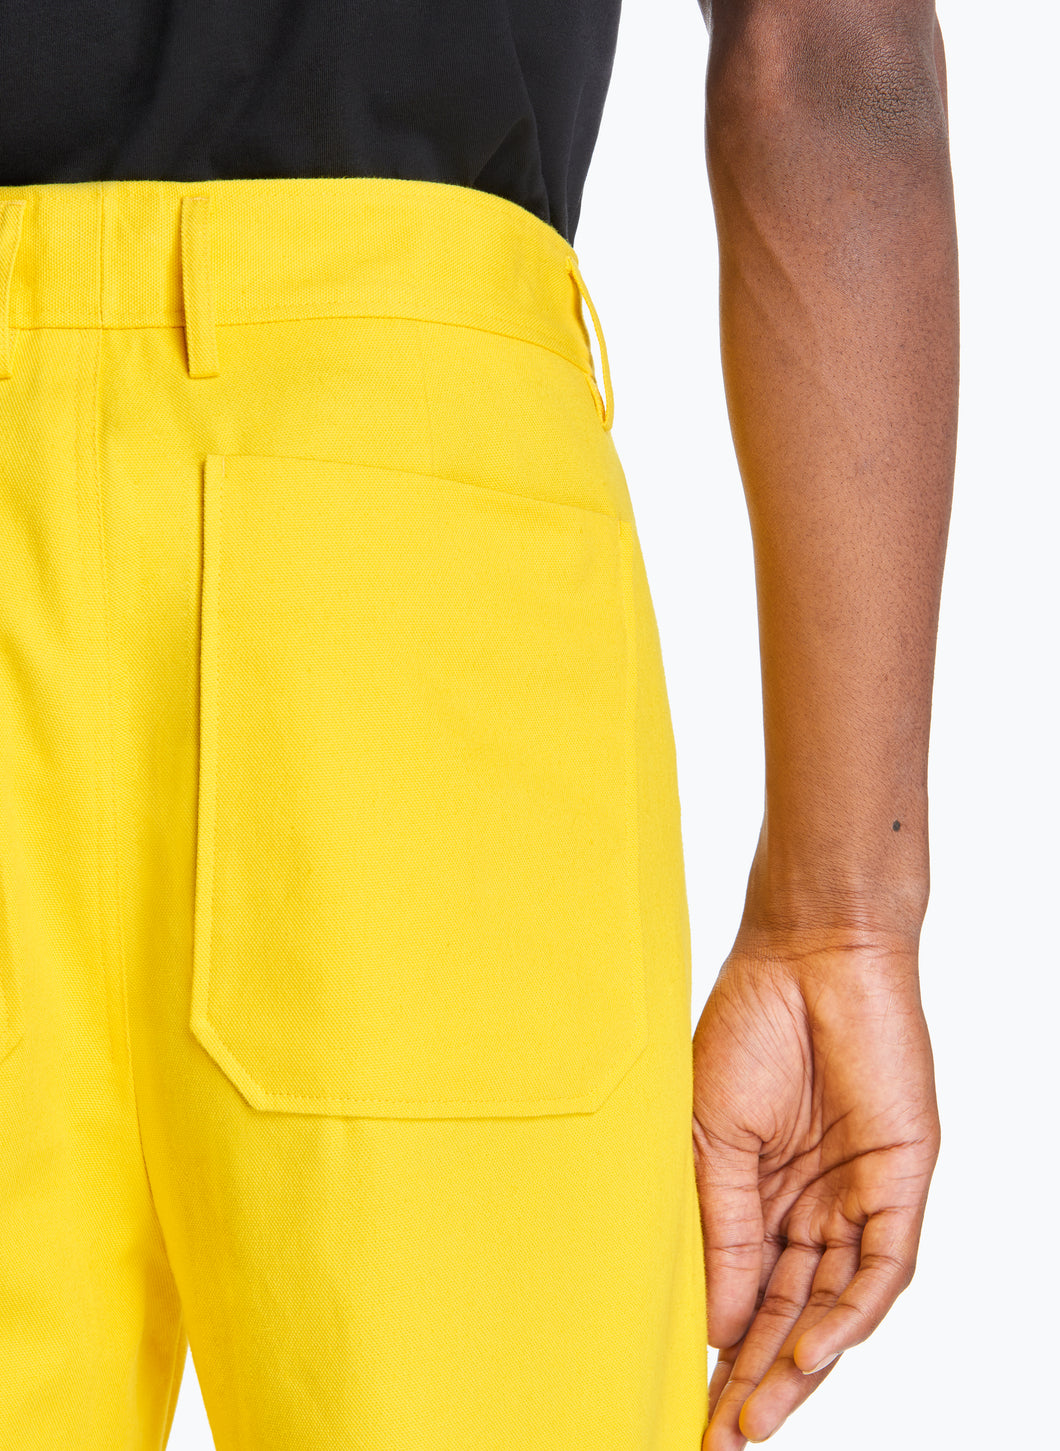 High-Waisted Pants with Reinforced Knees in Yellow Canvas